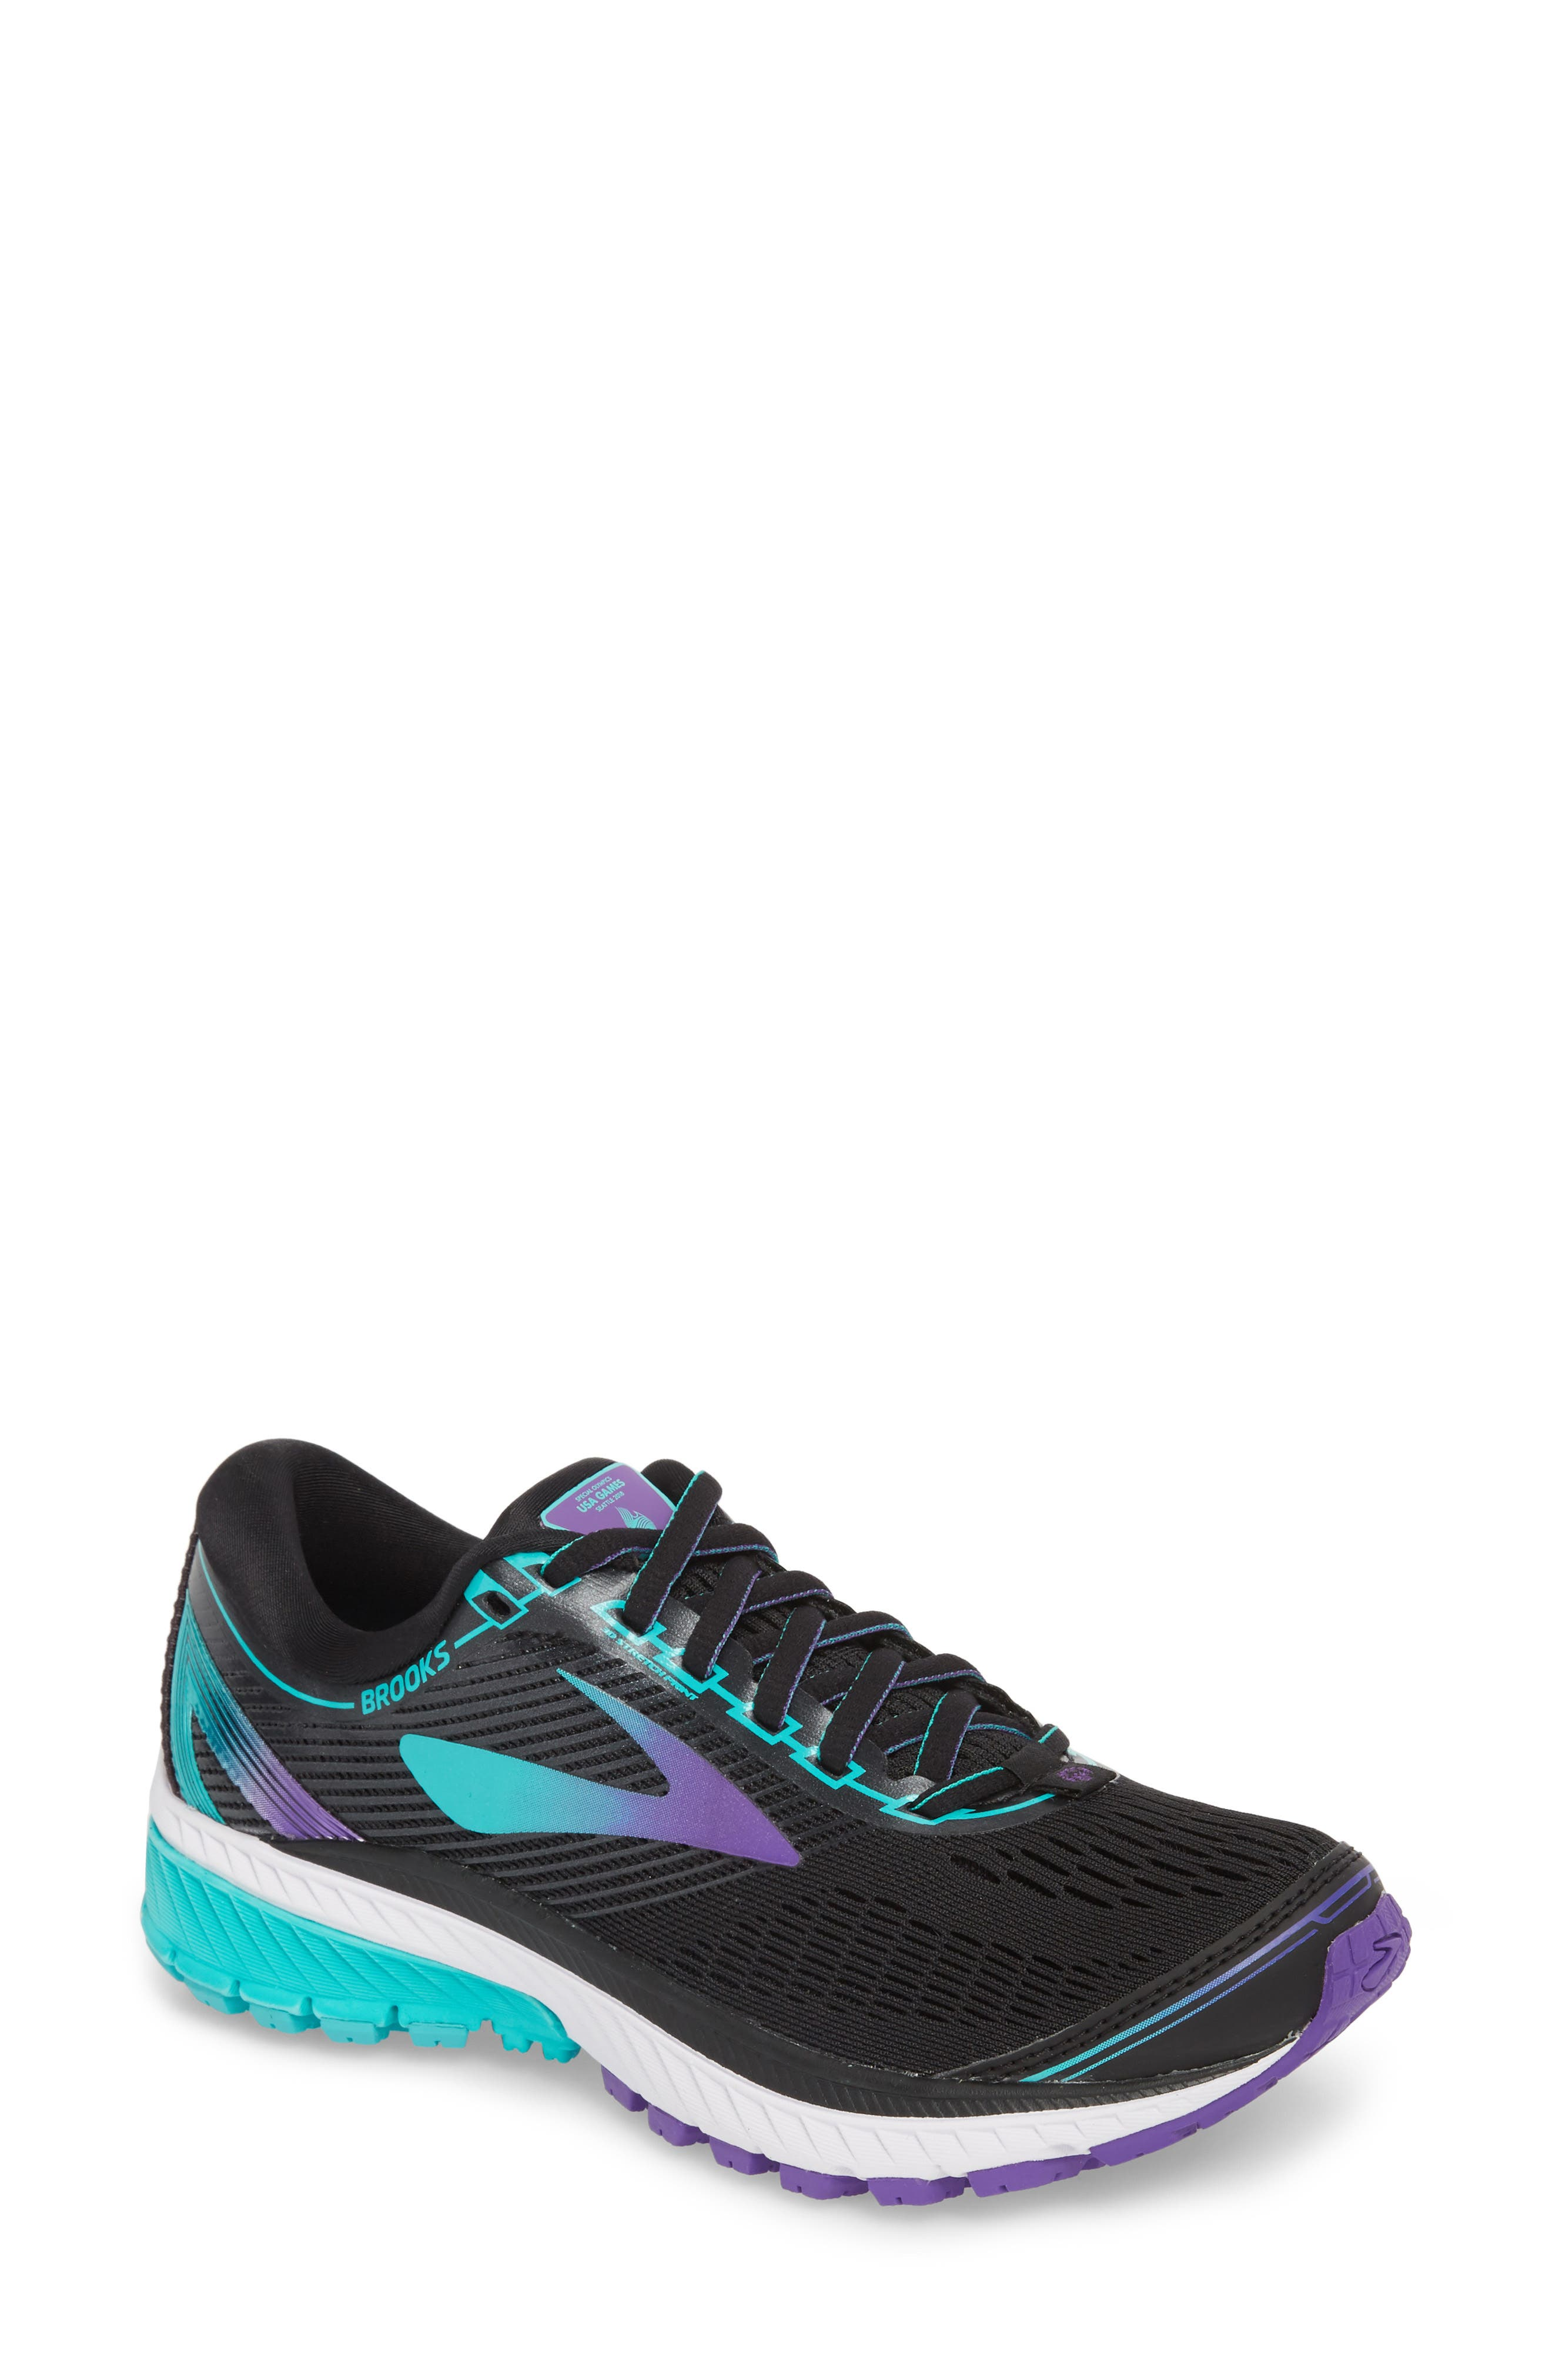 Ghost 10 Running Shoe,                             Main thumbnail 1, color,                             002